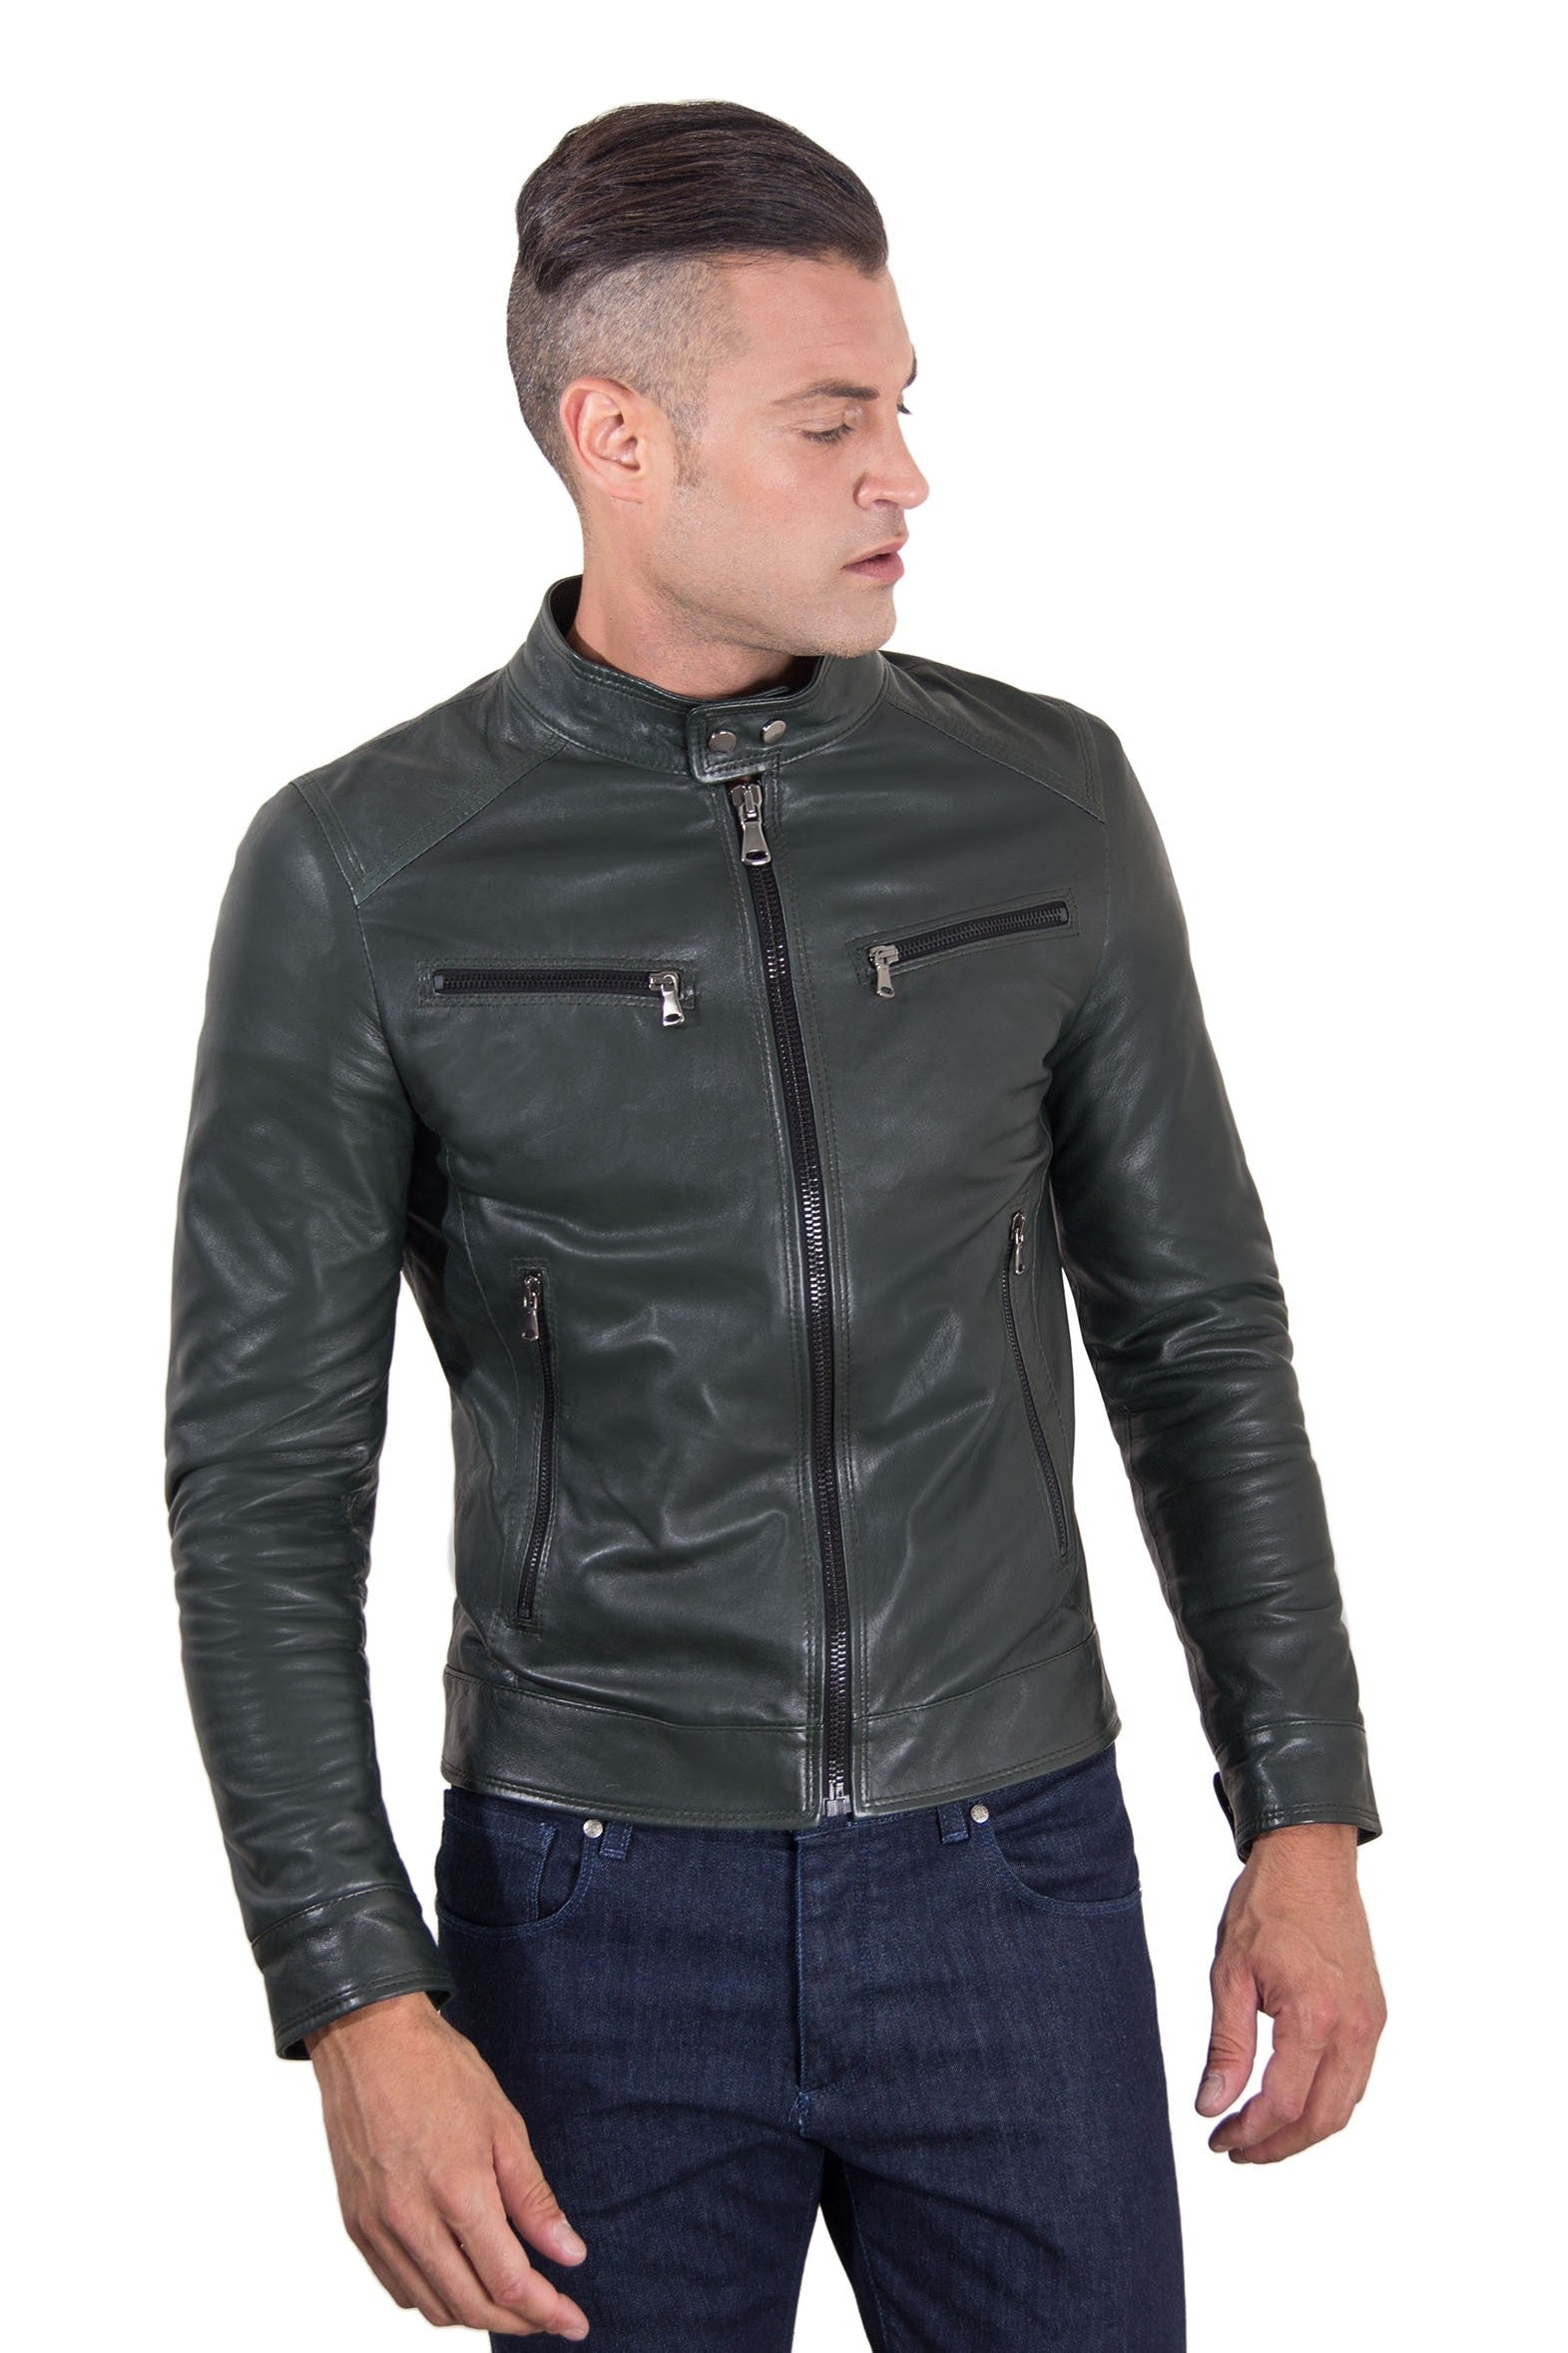 Men's Genuine Leather Biker Jacket Green Color